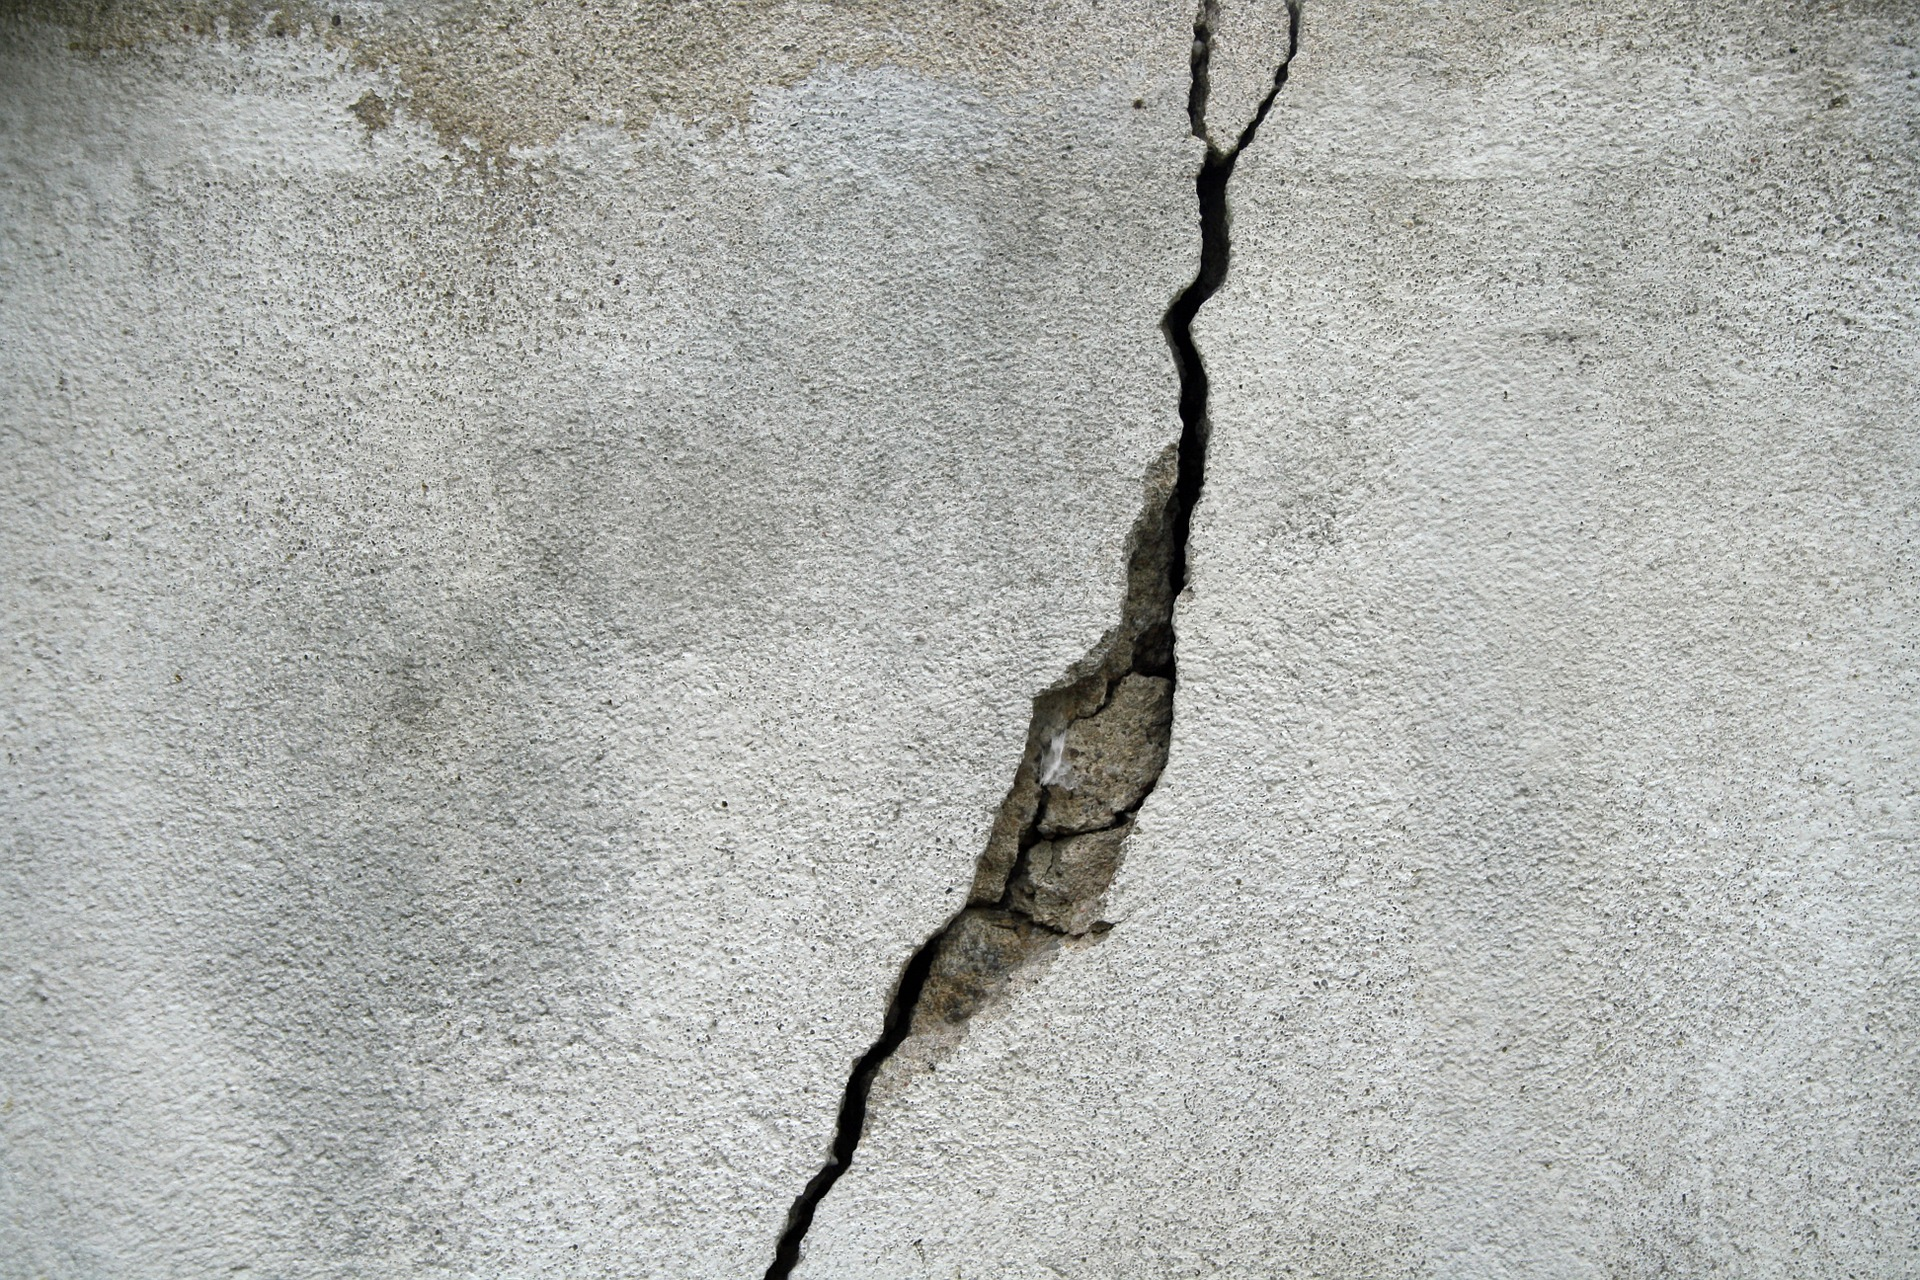 Basement Wall Crack in need of Repair in Worcester, Massachusetts